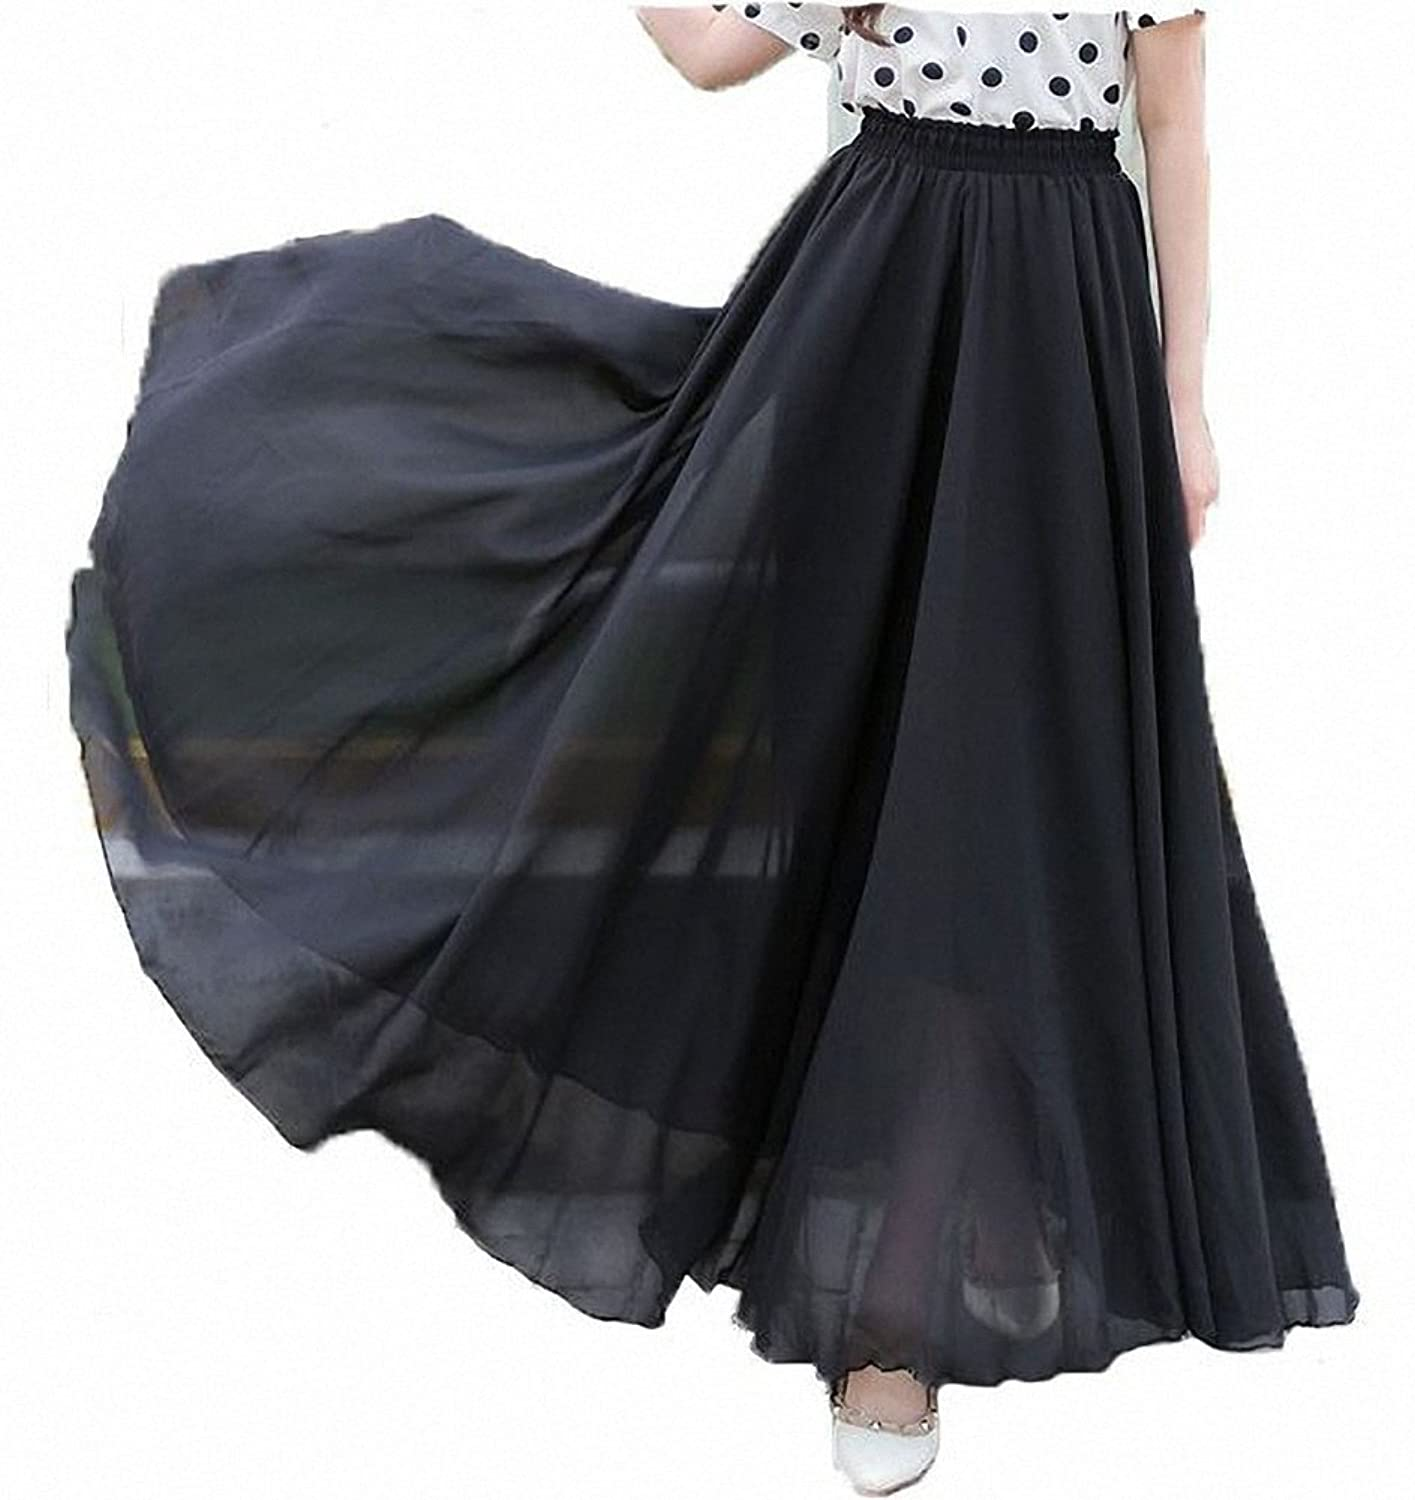 Steampunk Skirts | Bustle Skirts, Lace Skirts, Ruffle Skirts Afibi Womens Chiffon Retro Long Maxi Skirt Vintage Dress $15.69 AT vintagedancer.com